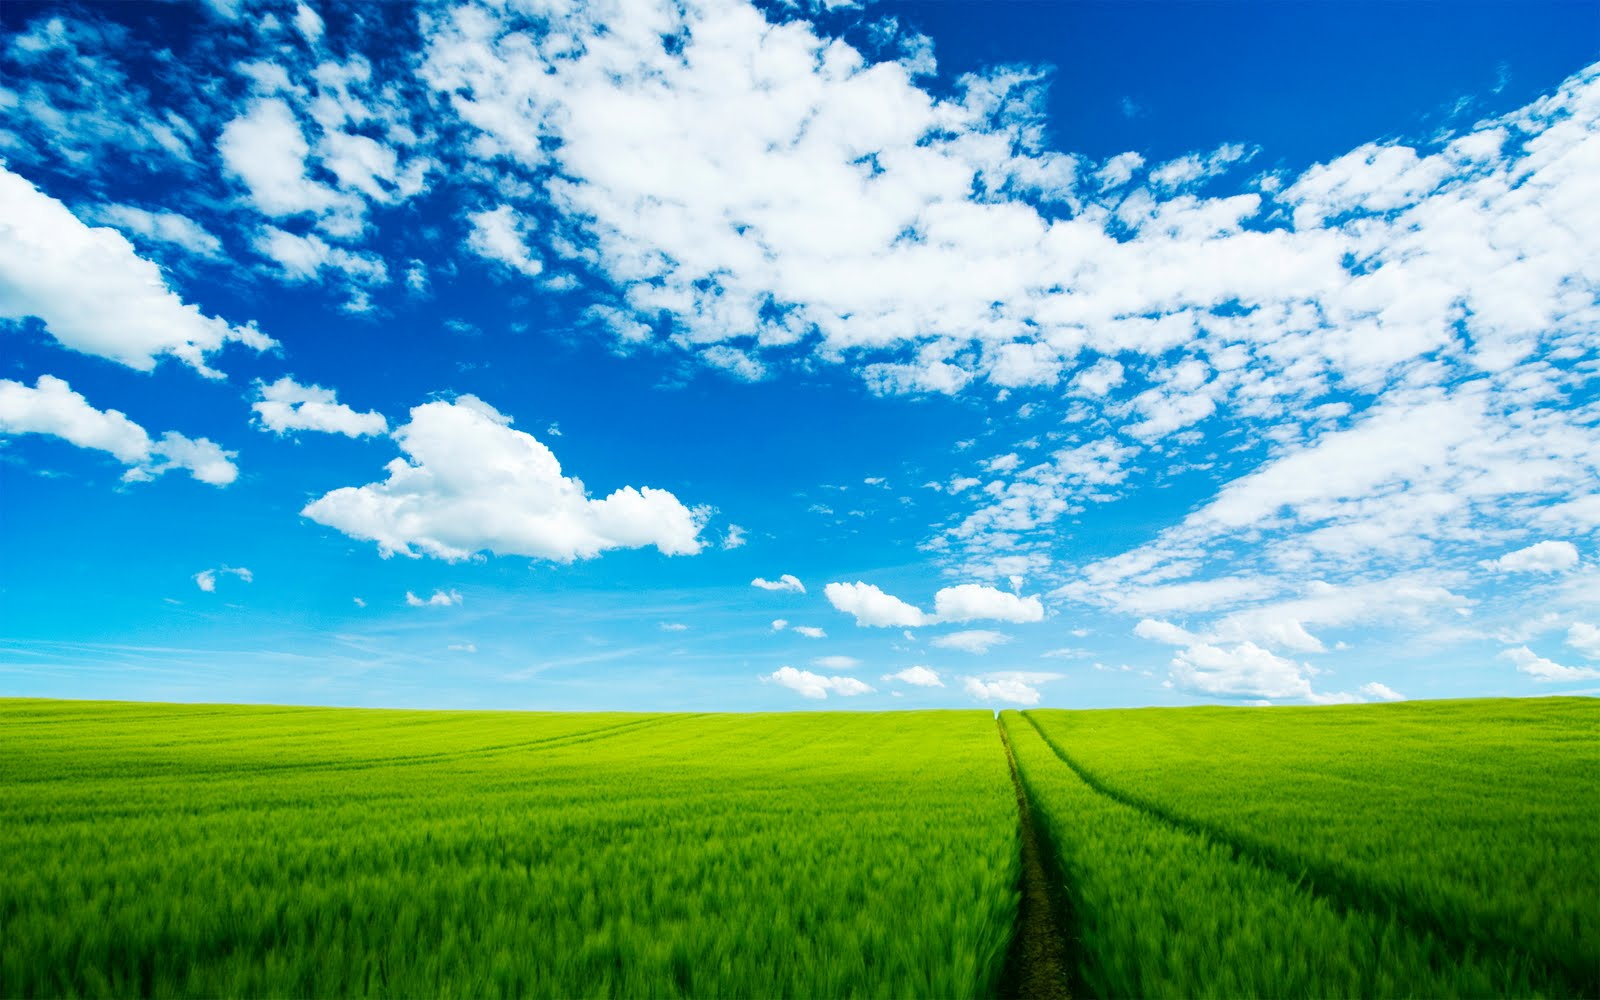 Wallpapers Box: Wheat Green Fields High Definition Wallpapers